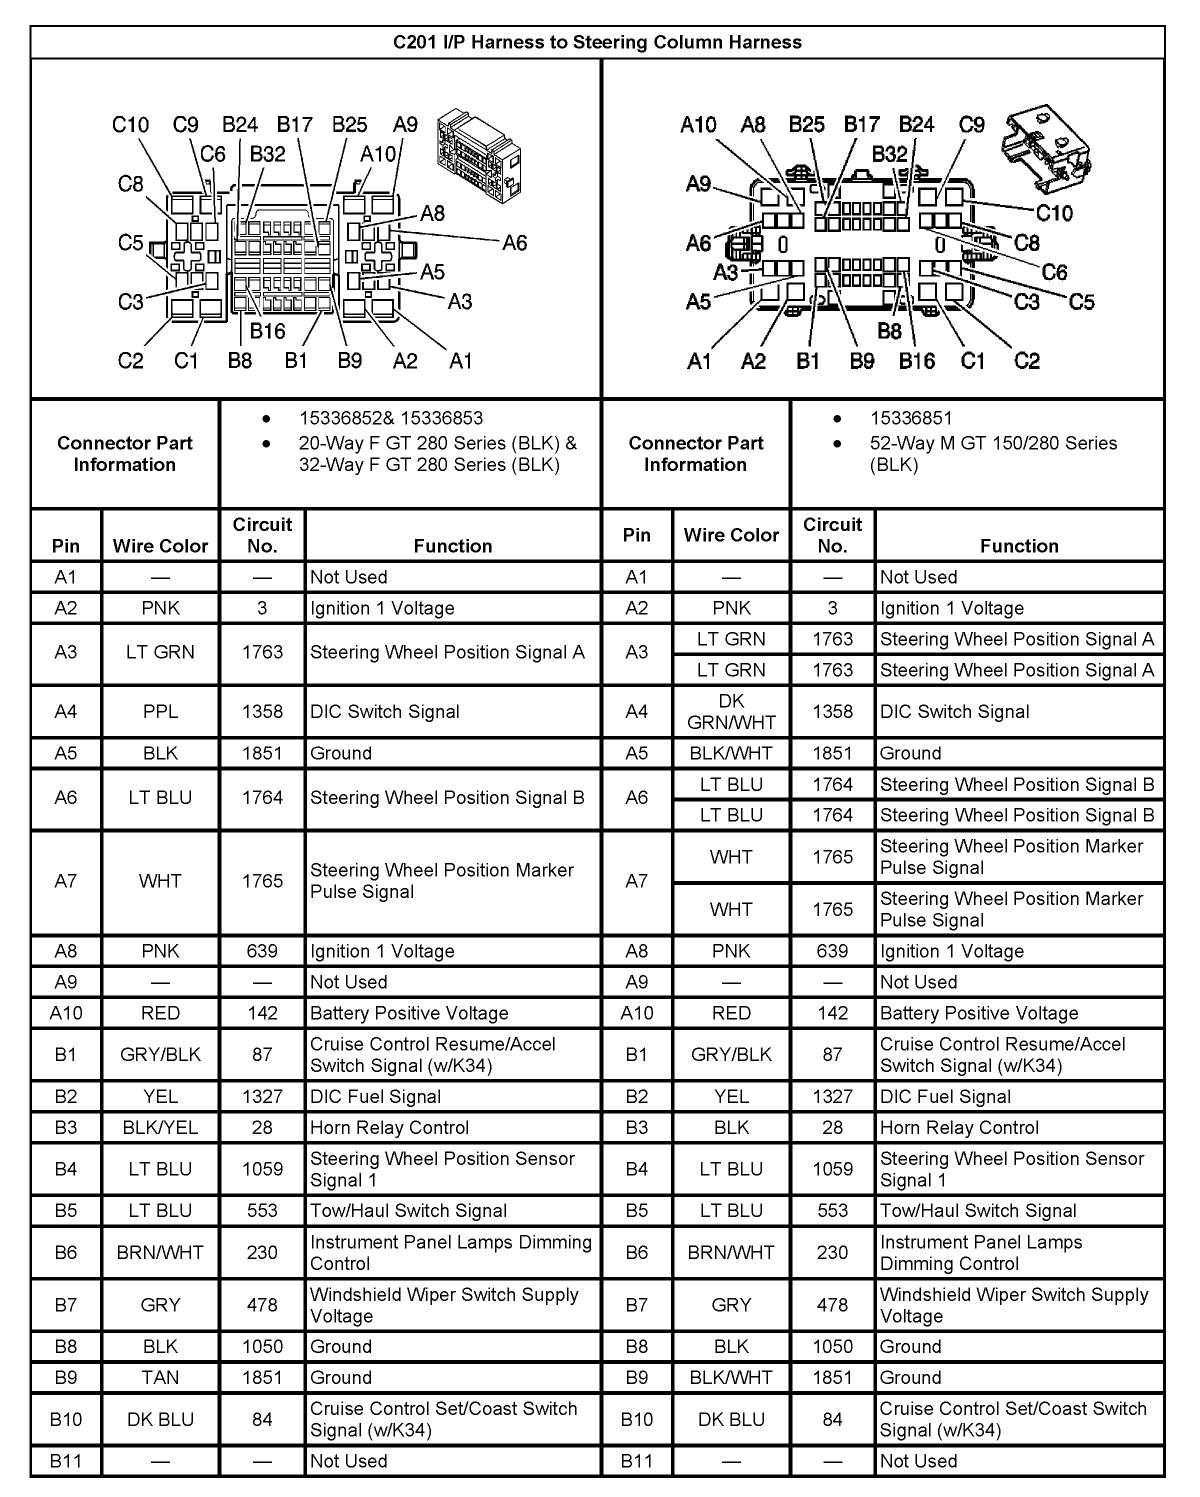 2008 gmc 1500 wiring diagram 2001 gmc yukon radio wiring diagram | free wiring diagram